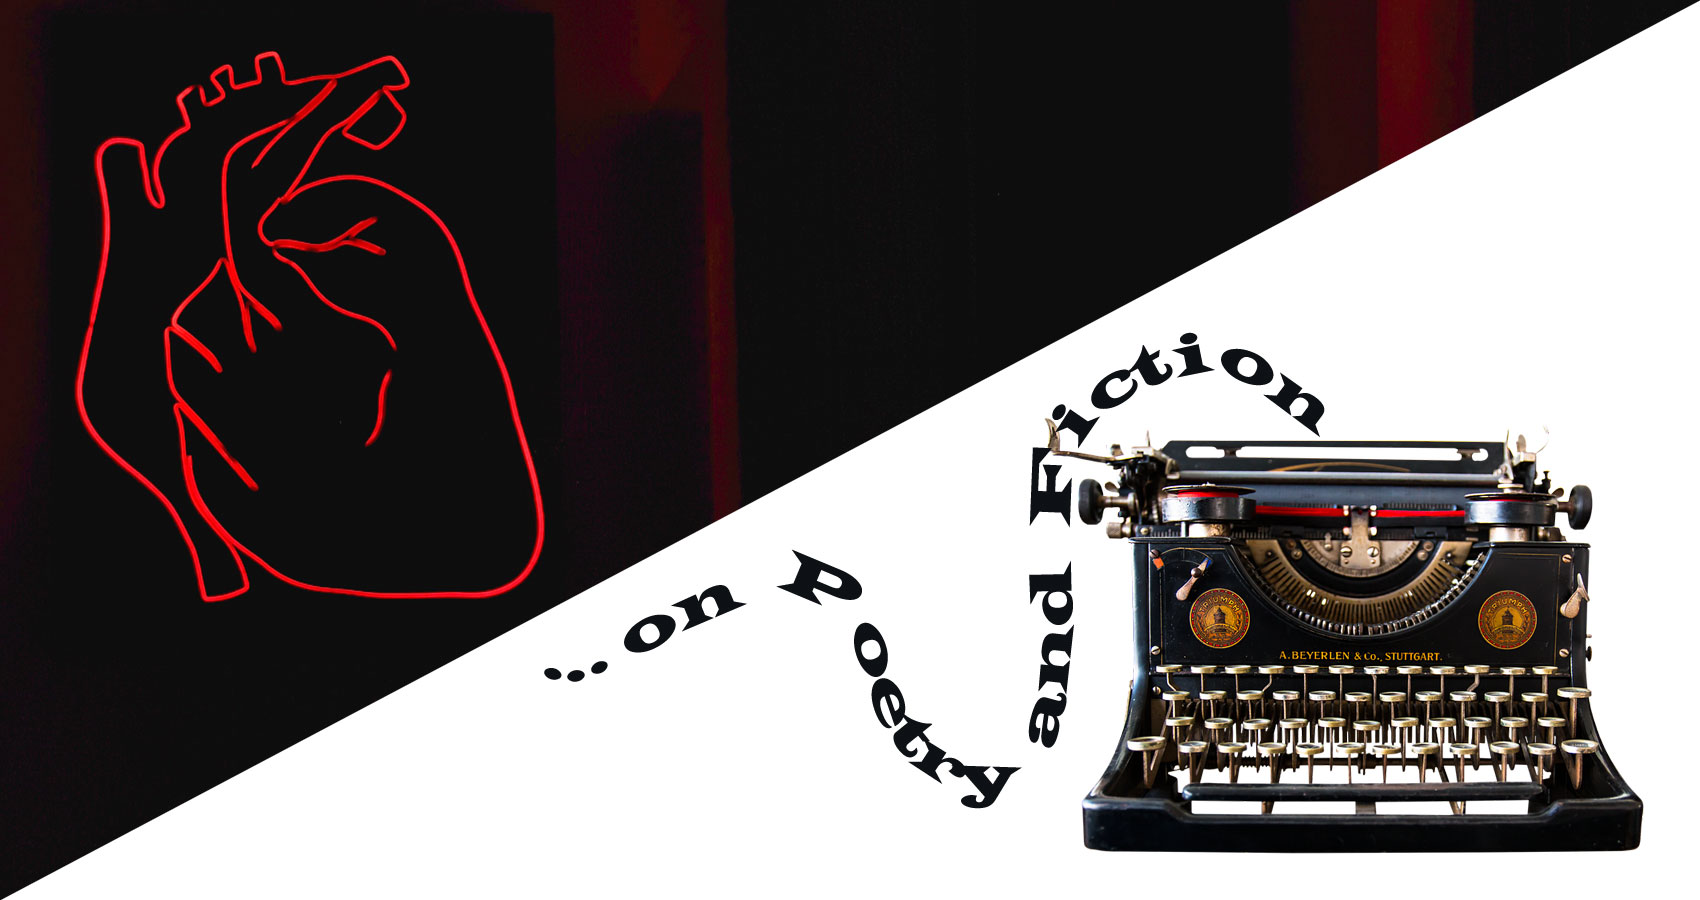 """...on Poetry and Fiction - Just """"One Word"""" Away (""""Heart""""), editorial by Phyllis P. Colucci at Spillwords.com"""